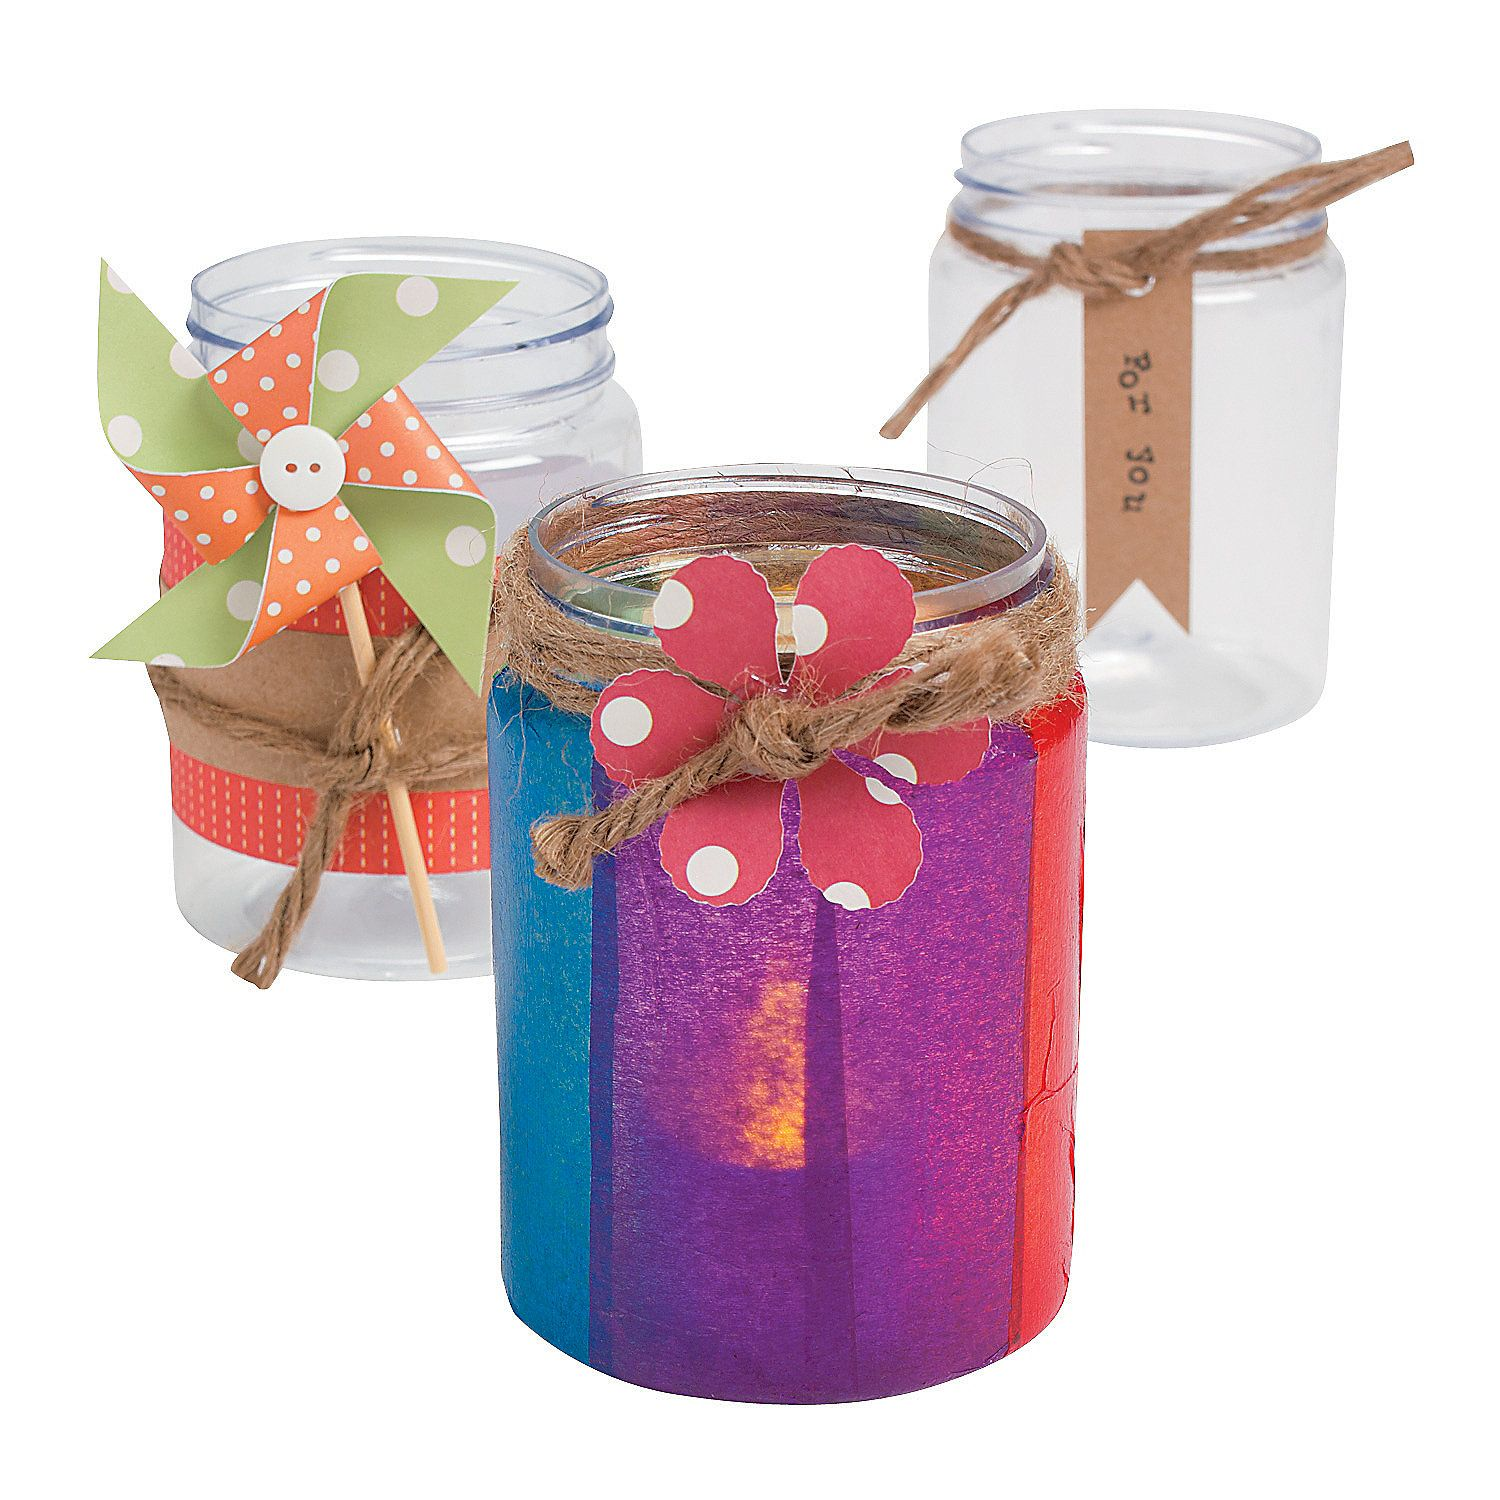 pinterest mason jar bridal shower favors%0A Filled with potpourri  candy or flowers  these Rainbow Jars are a marvelous  way to make anyone u    s day just a tad brighter  A perfect party decoration  for